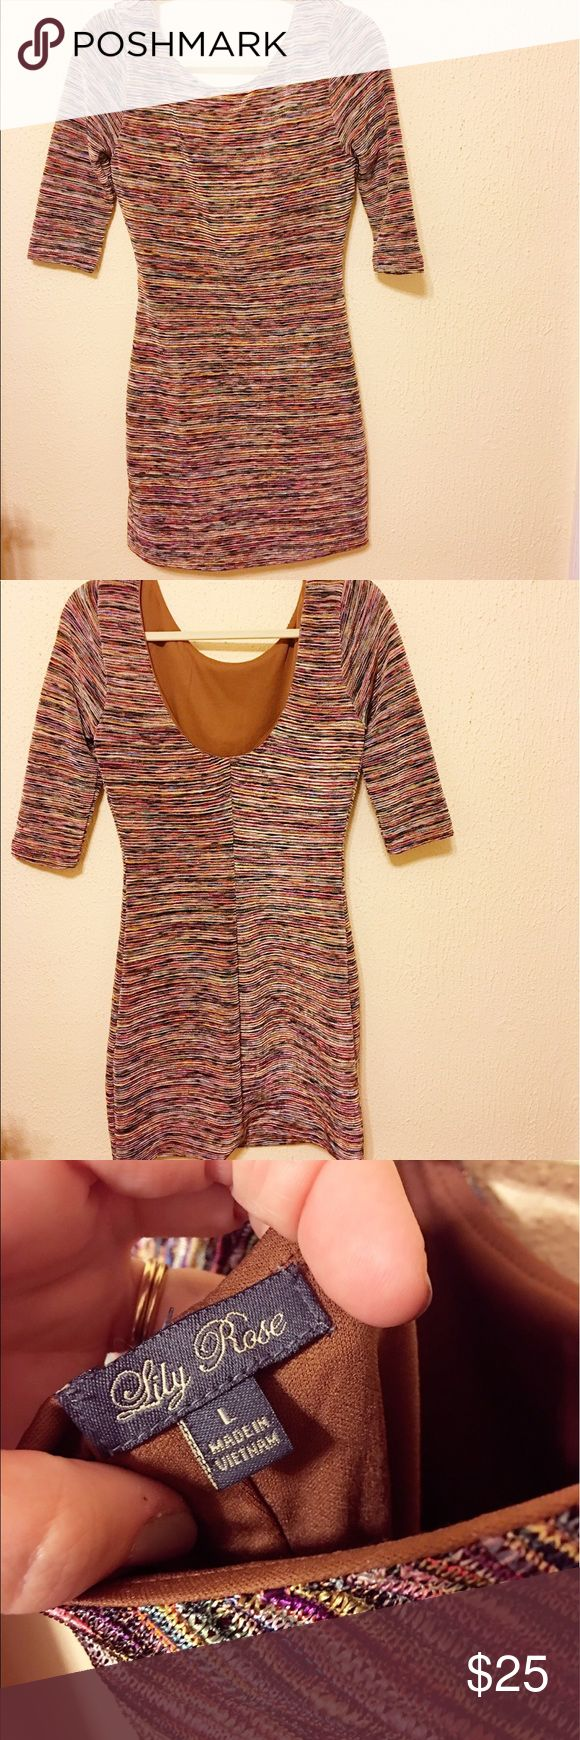 """❗️SALE❗️Lily Rose Striped Mini Dress Multi colored horizontal stripes fitted dress. Low back- need low bra or go without. Best on chest size C and smaller (depending on height). Prominent colors of bronze and browns with purple pink and blue accents. Only worn once in Nashville for bachelorette. SUPER COMFY! Looks great w/ boots/heels - I'm 5'9"""" so dress is extremely short, keep that in mind. My fingers went past length of dress when arms down. Somewhat stretchy, very form fitting, 3/4…"""